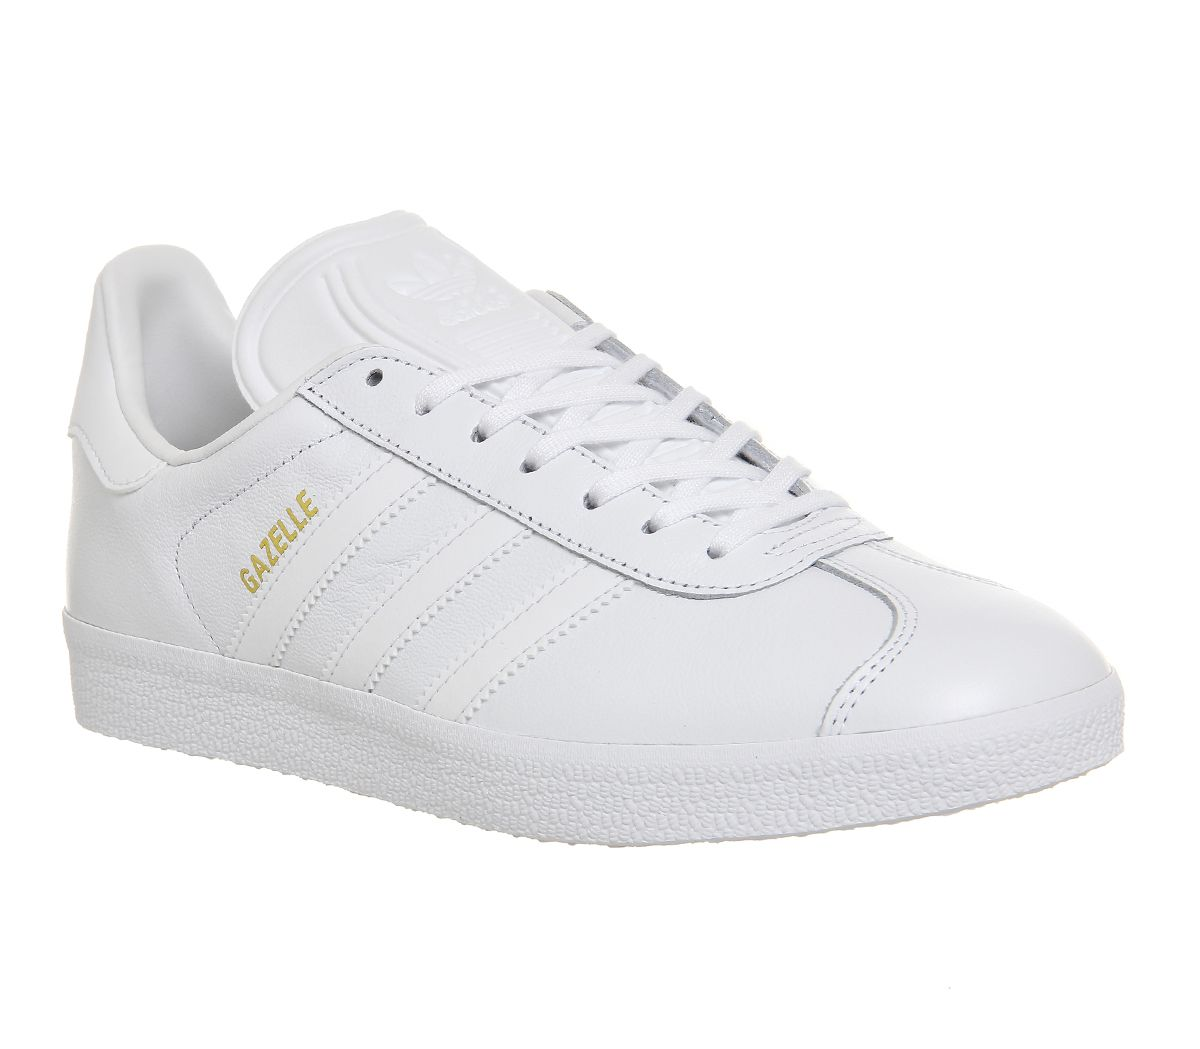 low priced 01545 61f12 adidas Gazelle White - His trainers